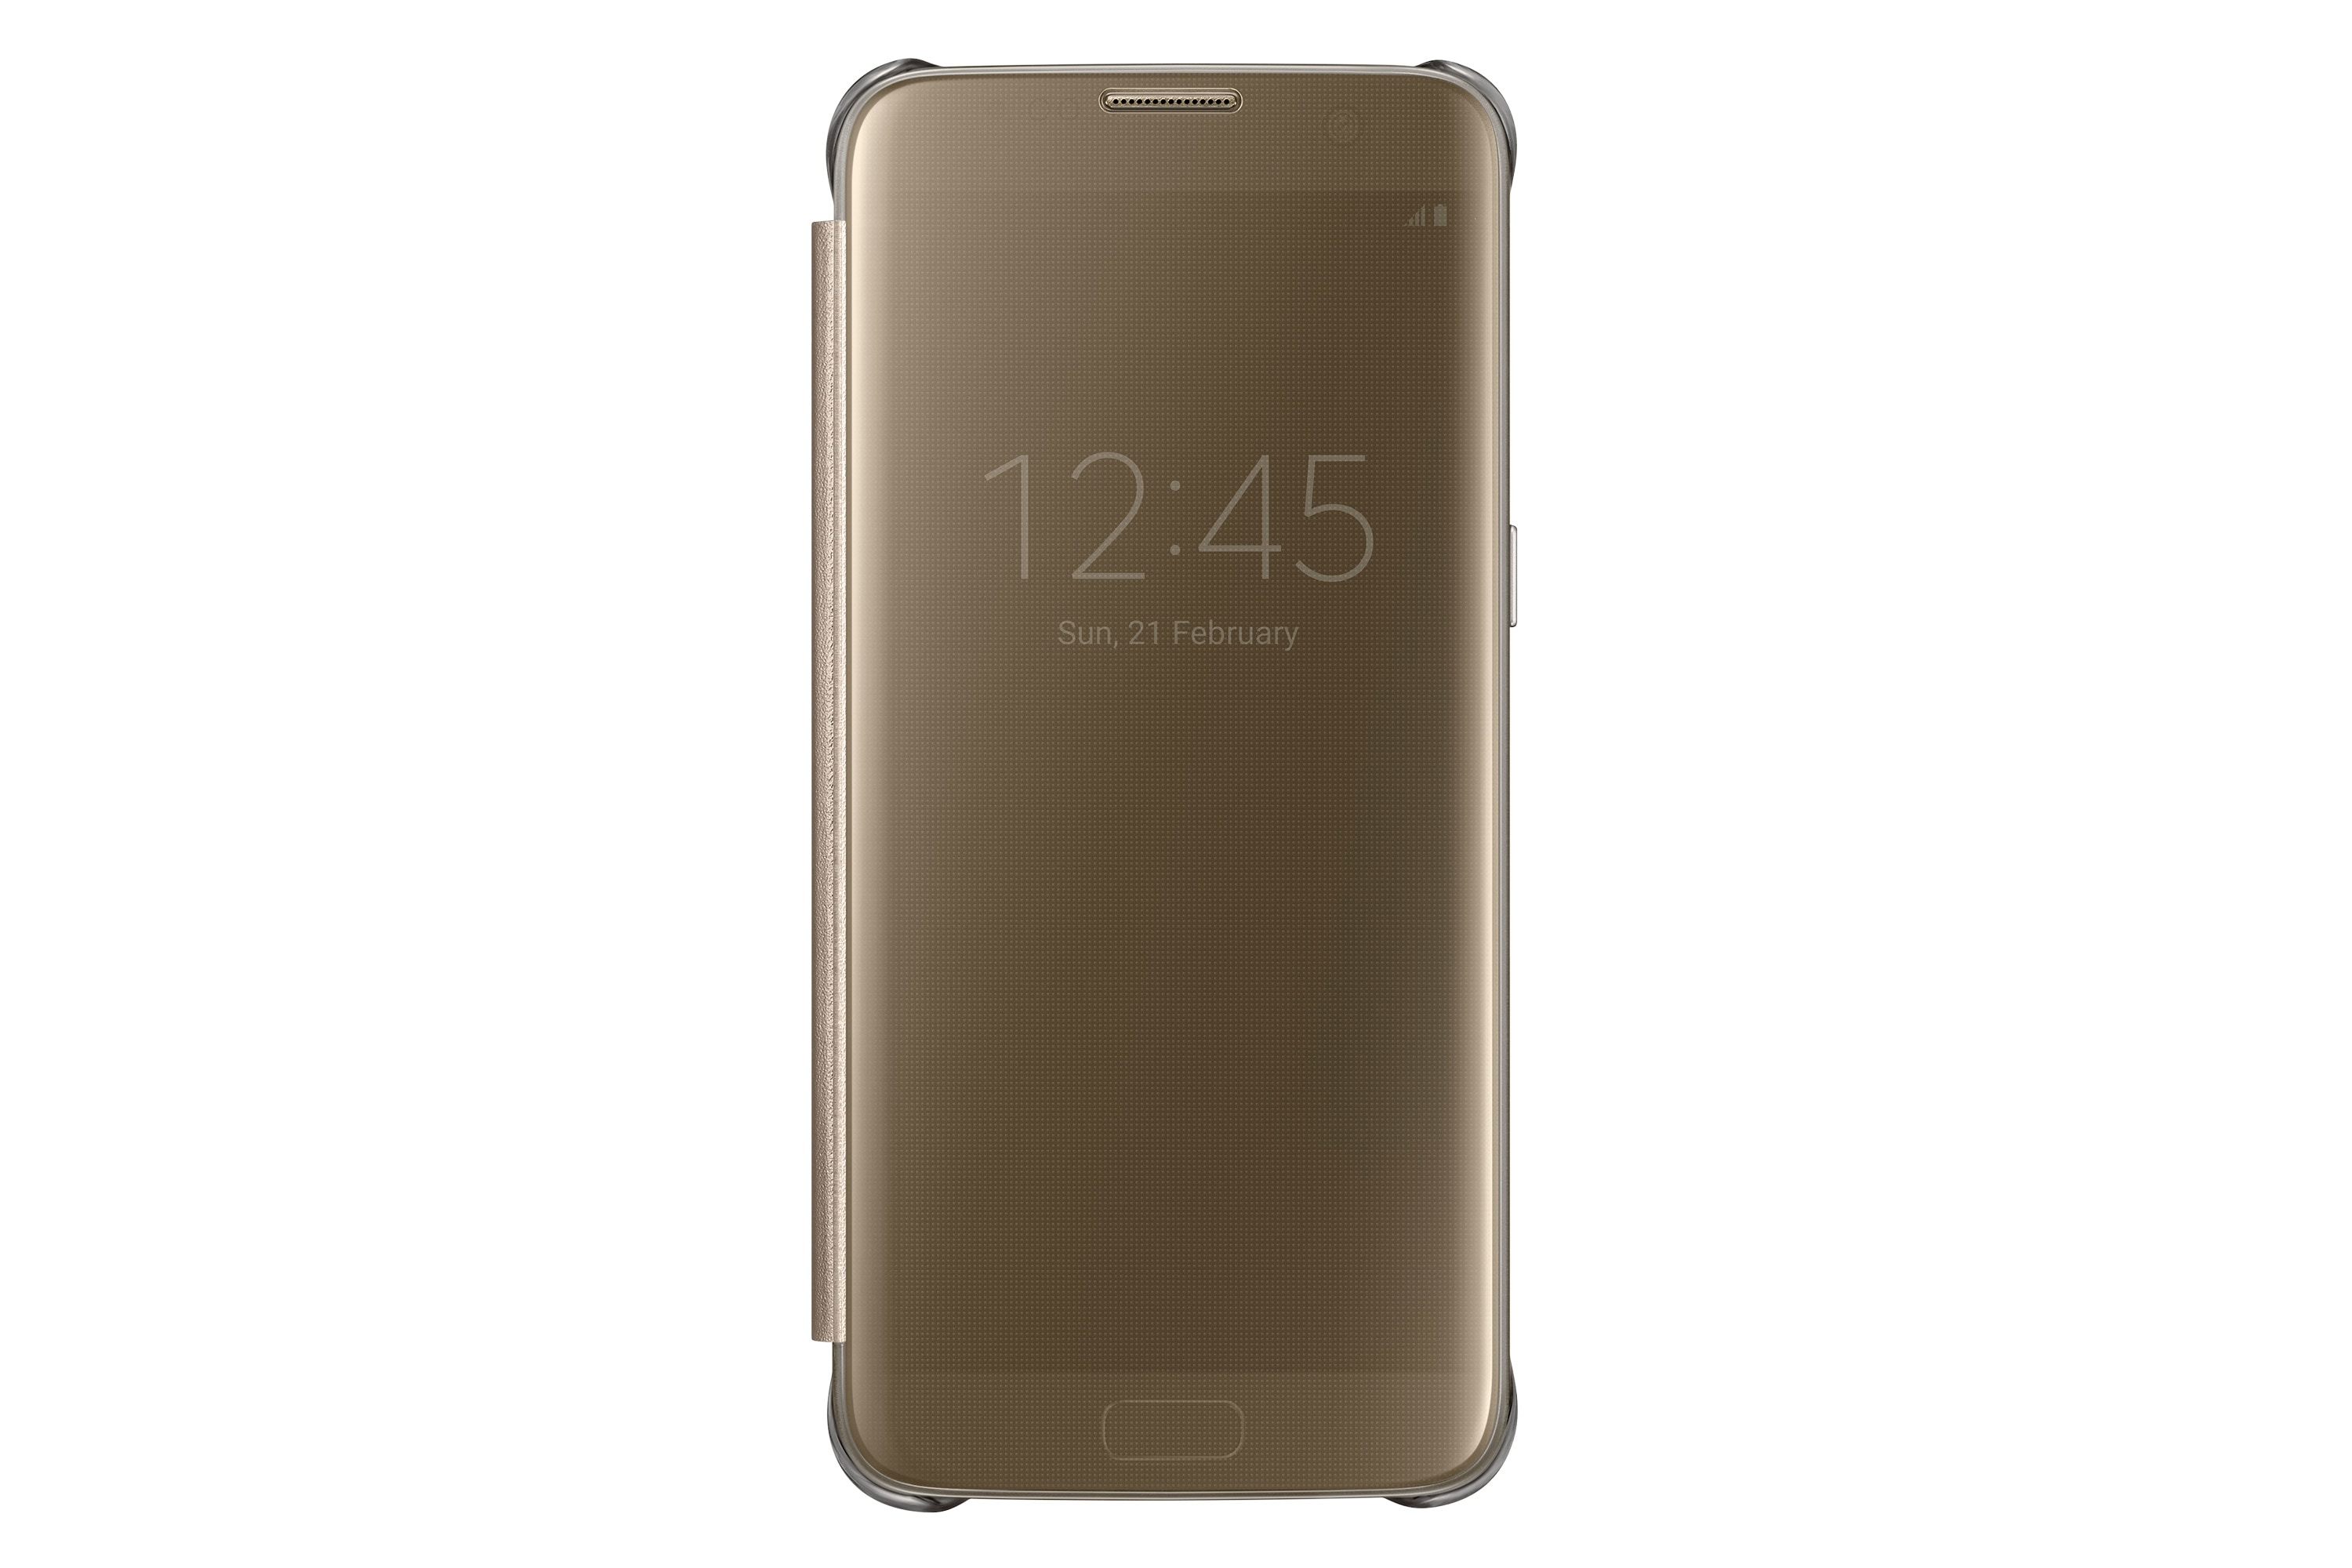 Galaxy S7 edge Clear View Cover Case Gold   Samsung UK be6d81211392